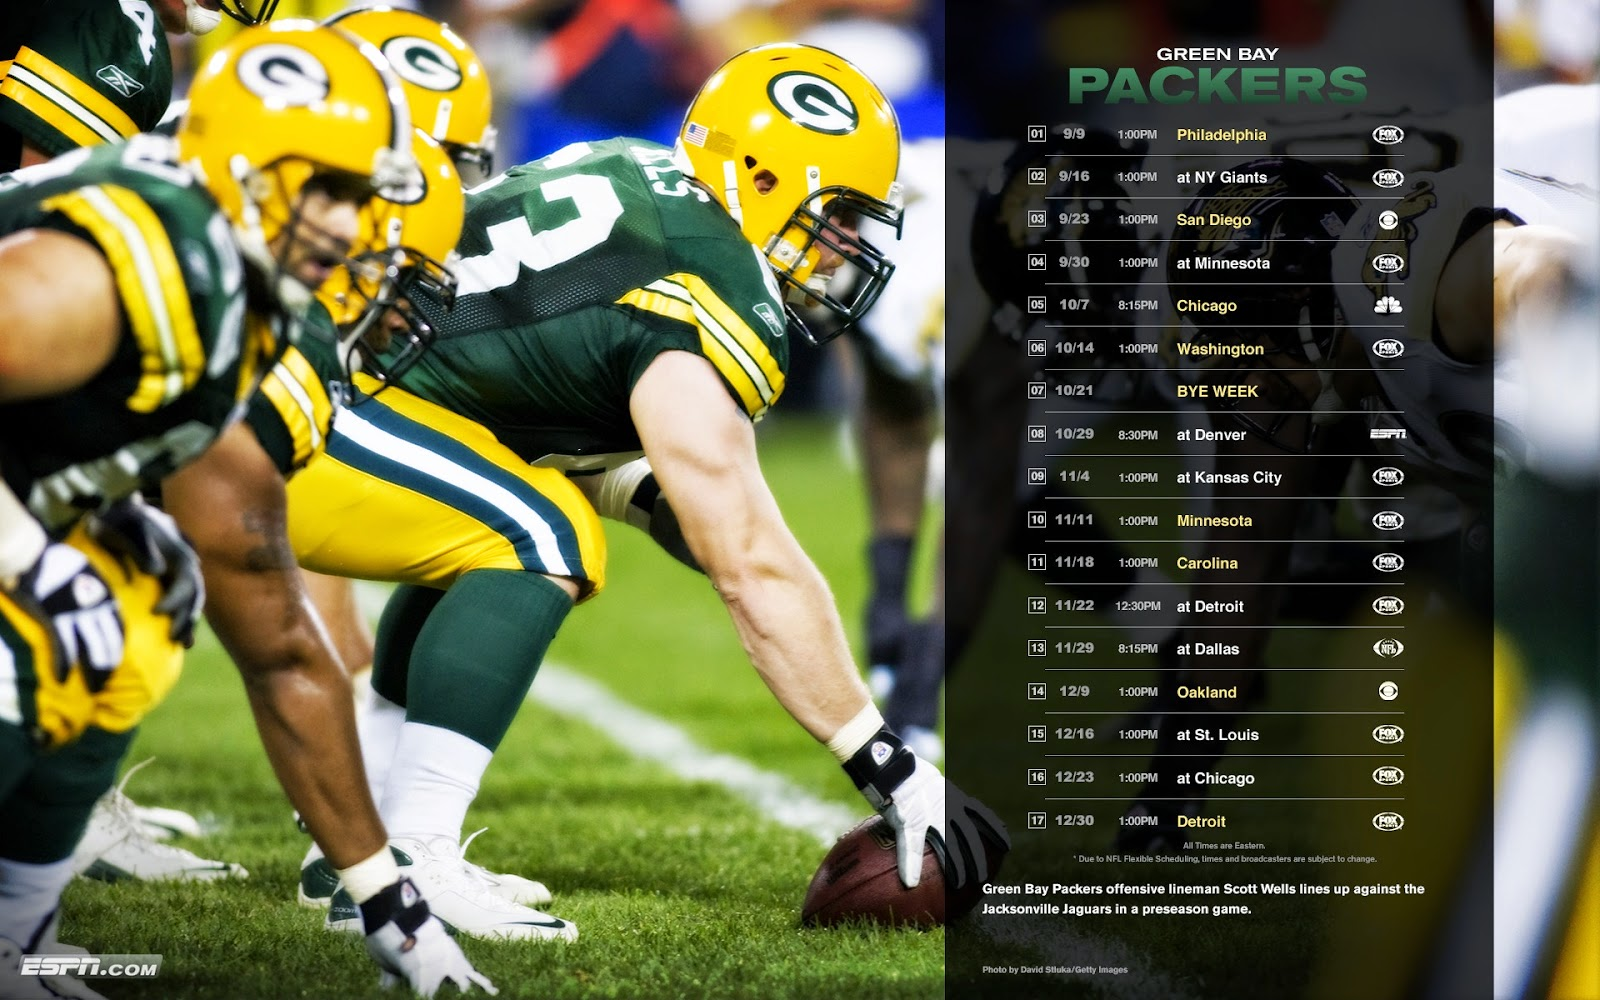 green bay packers wallpaper 2016 - photo #23